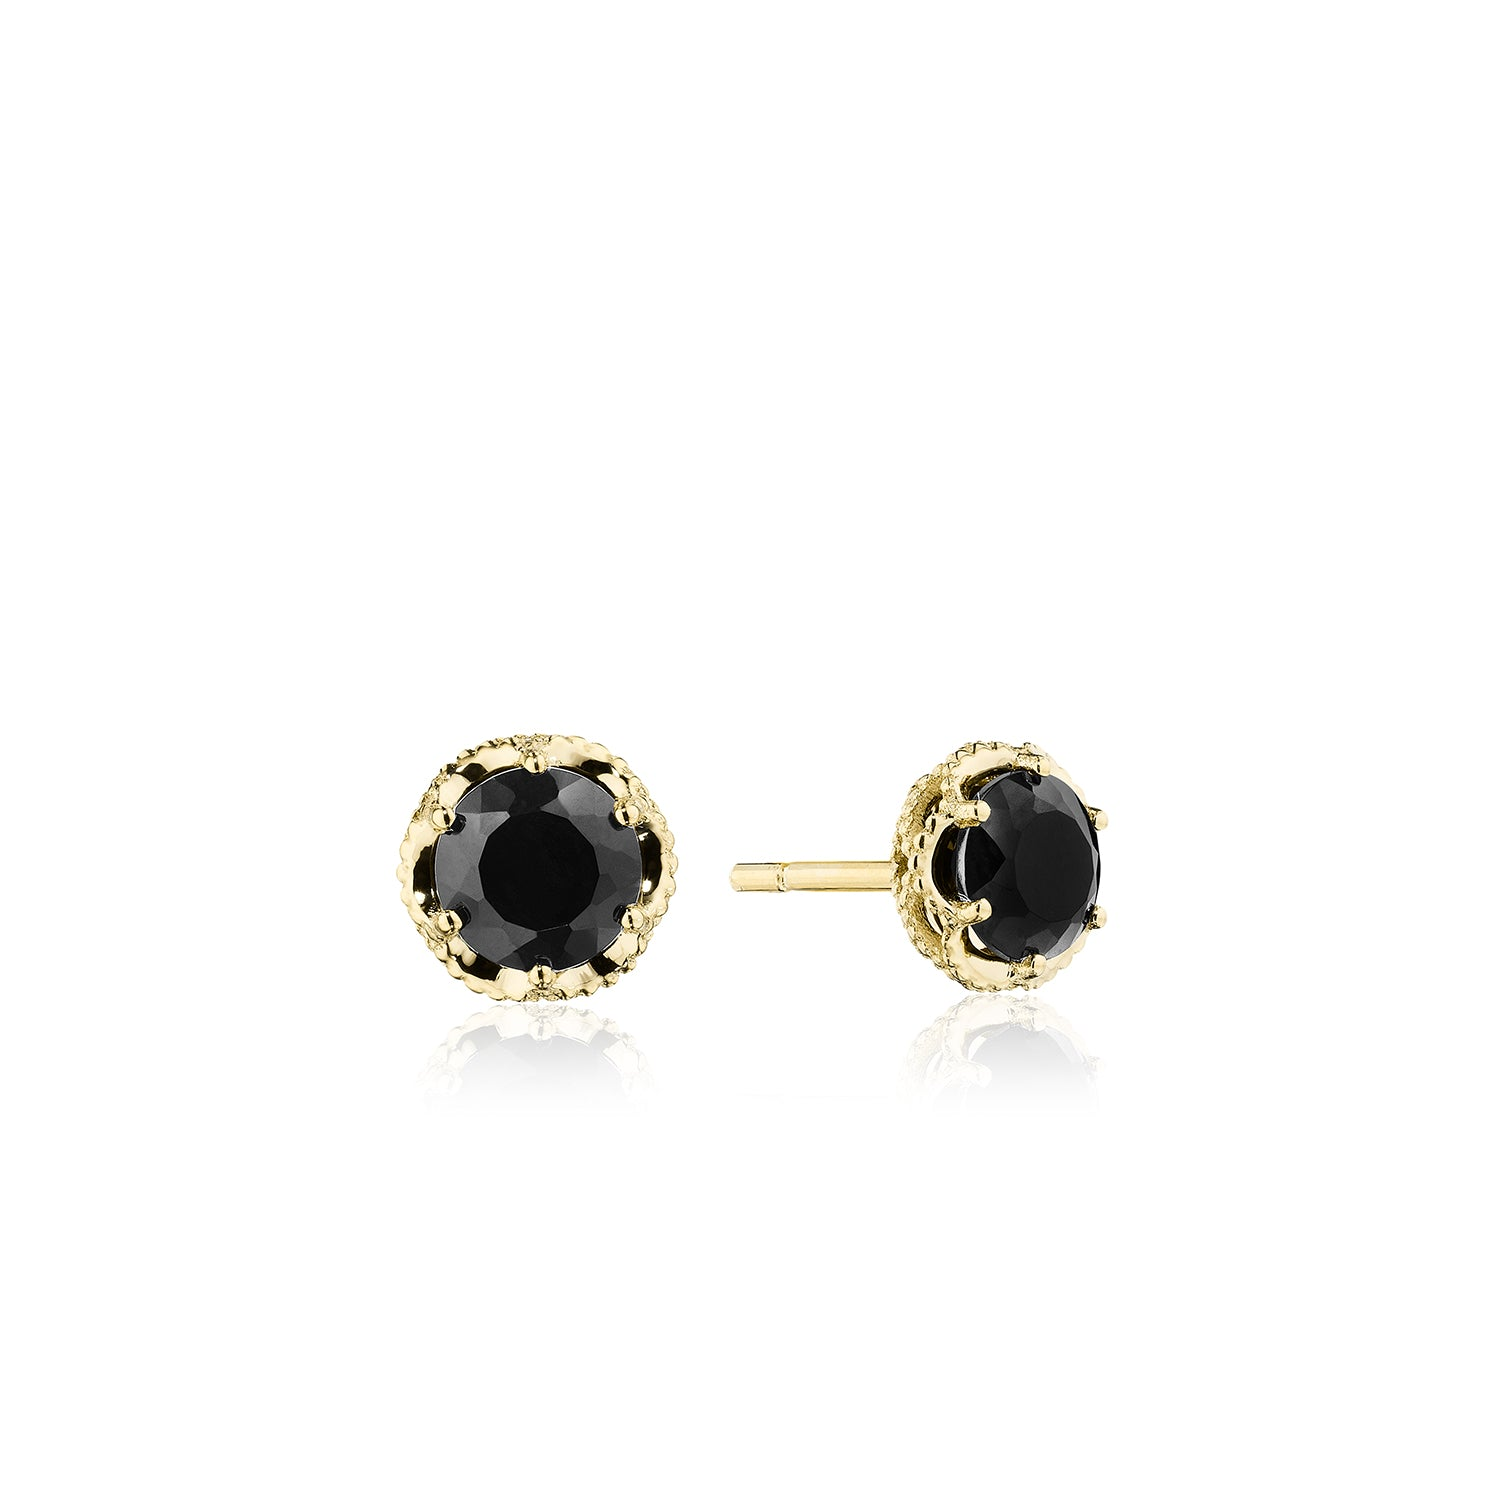 Petite Crescent Crown Studs featuring Black Onyx and Yellow Gold